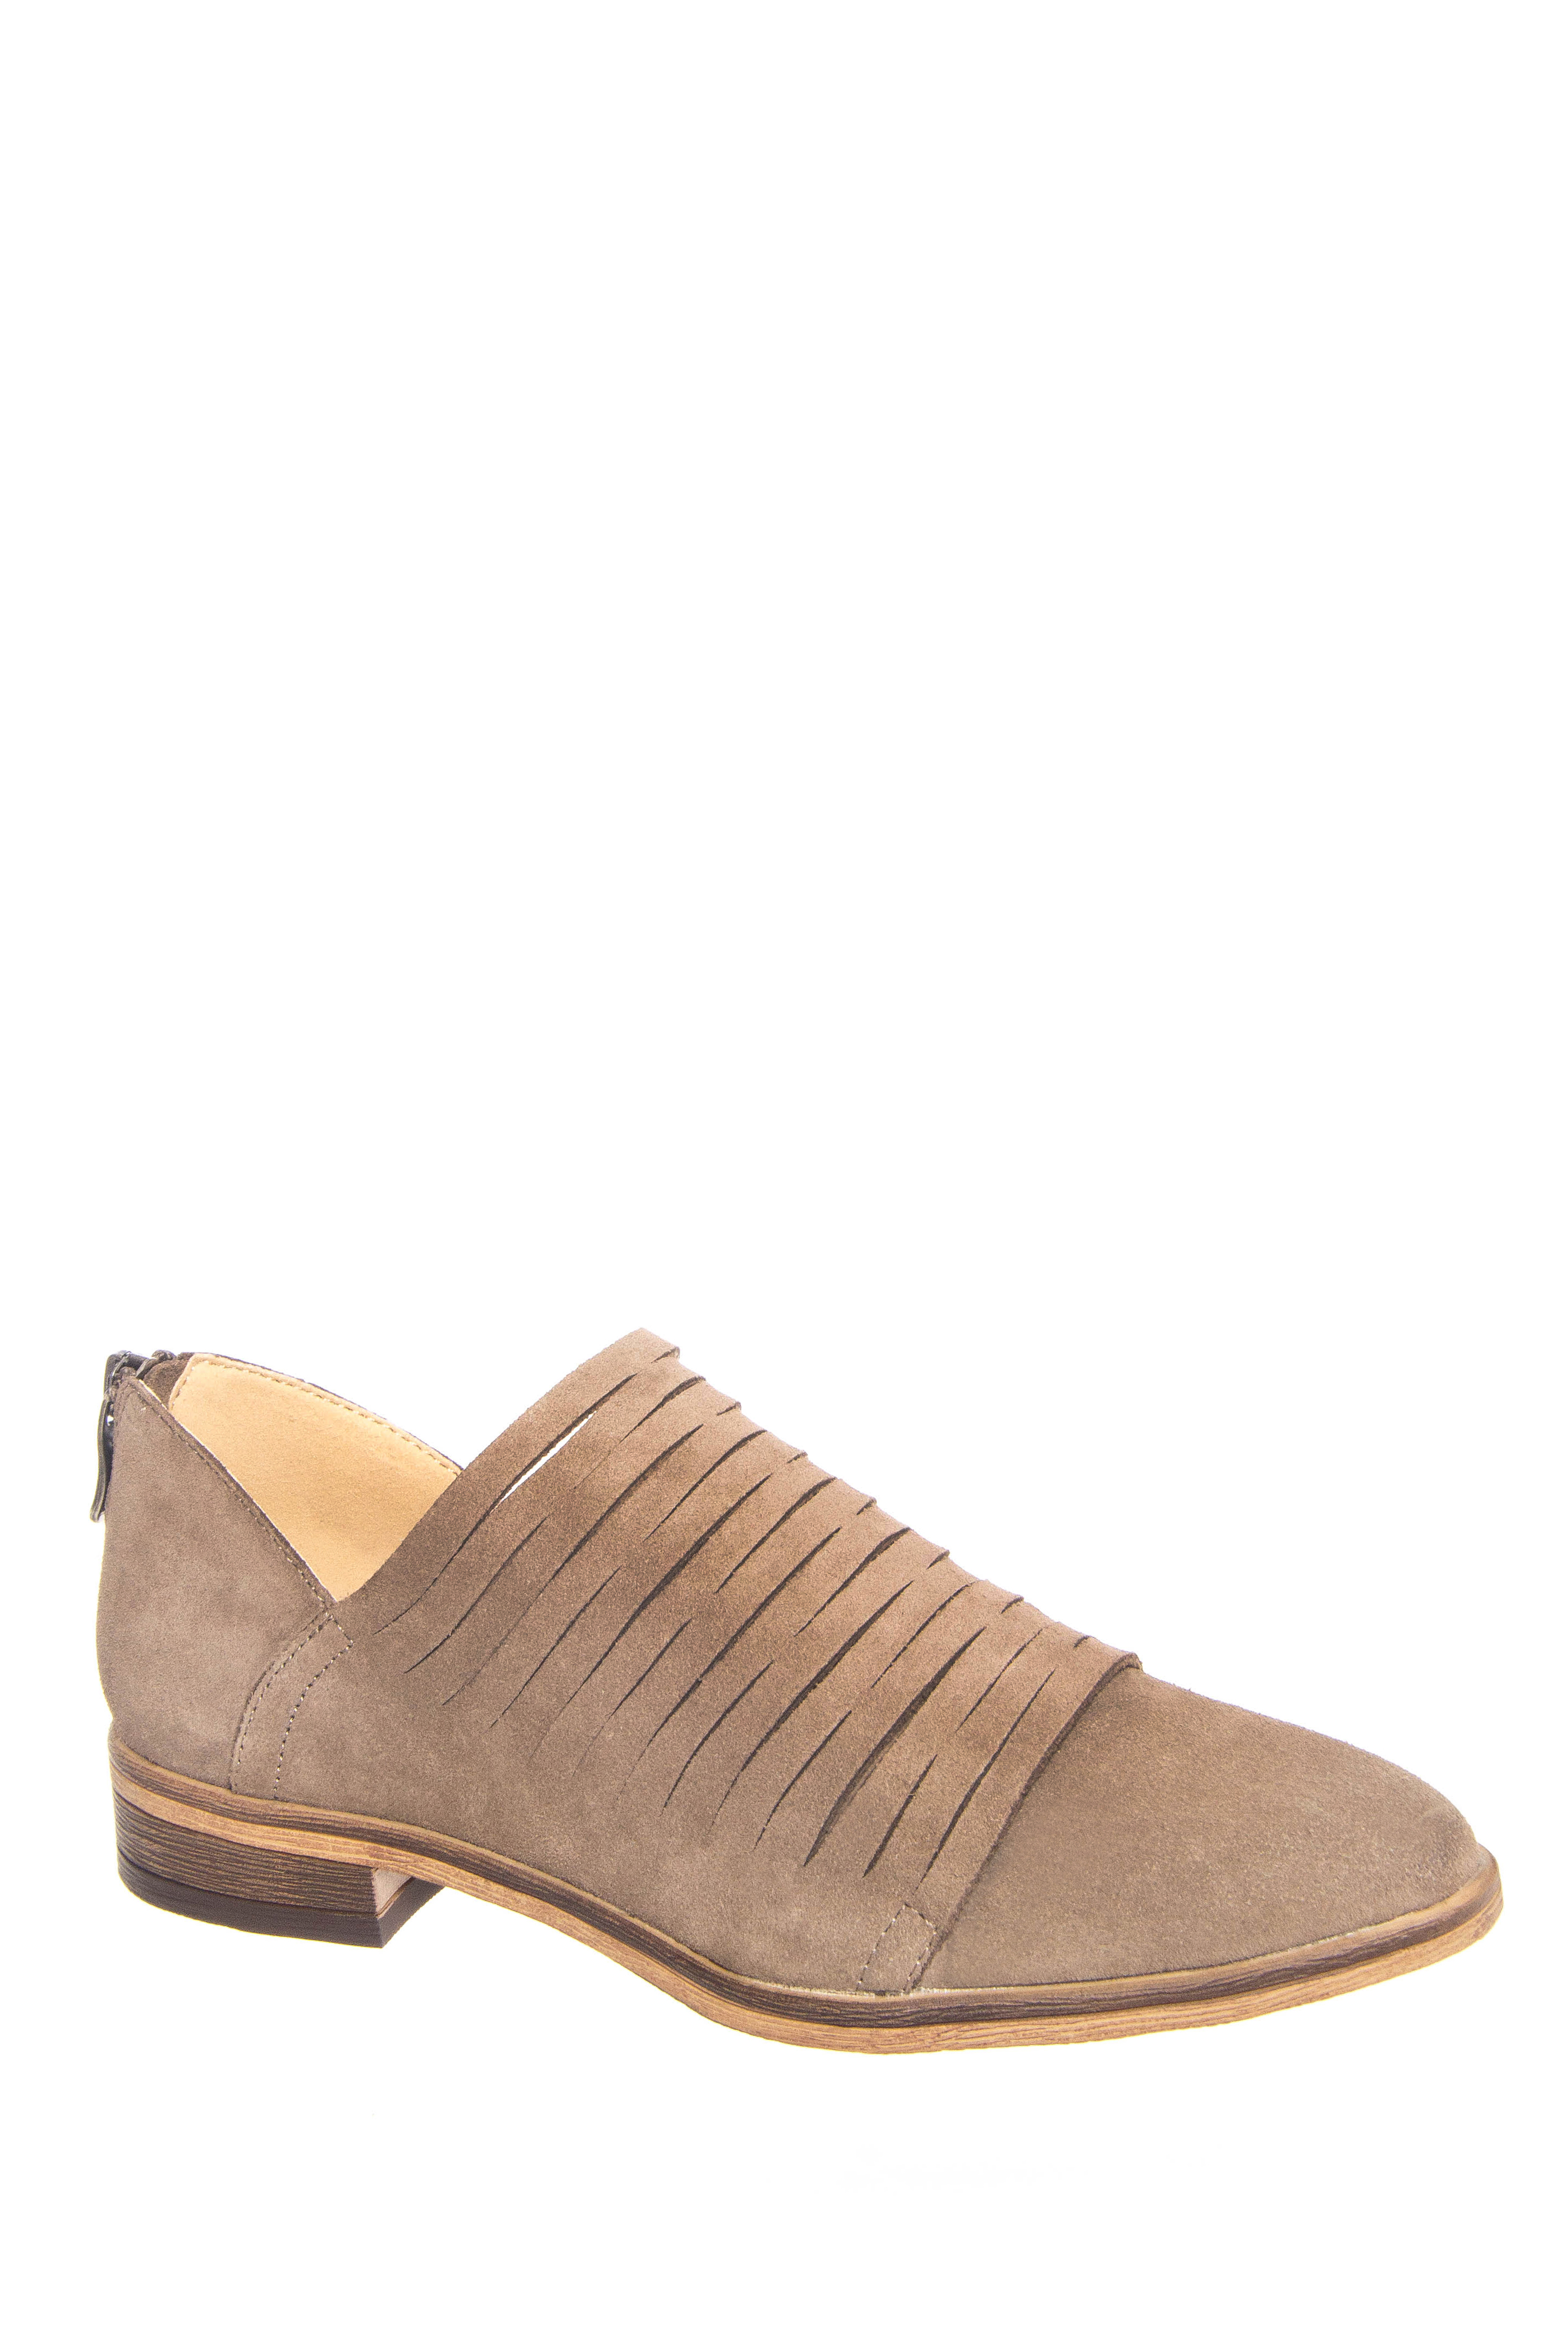 Chinese Laundry Danika Flats Suede Booties - Taupe Suede